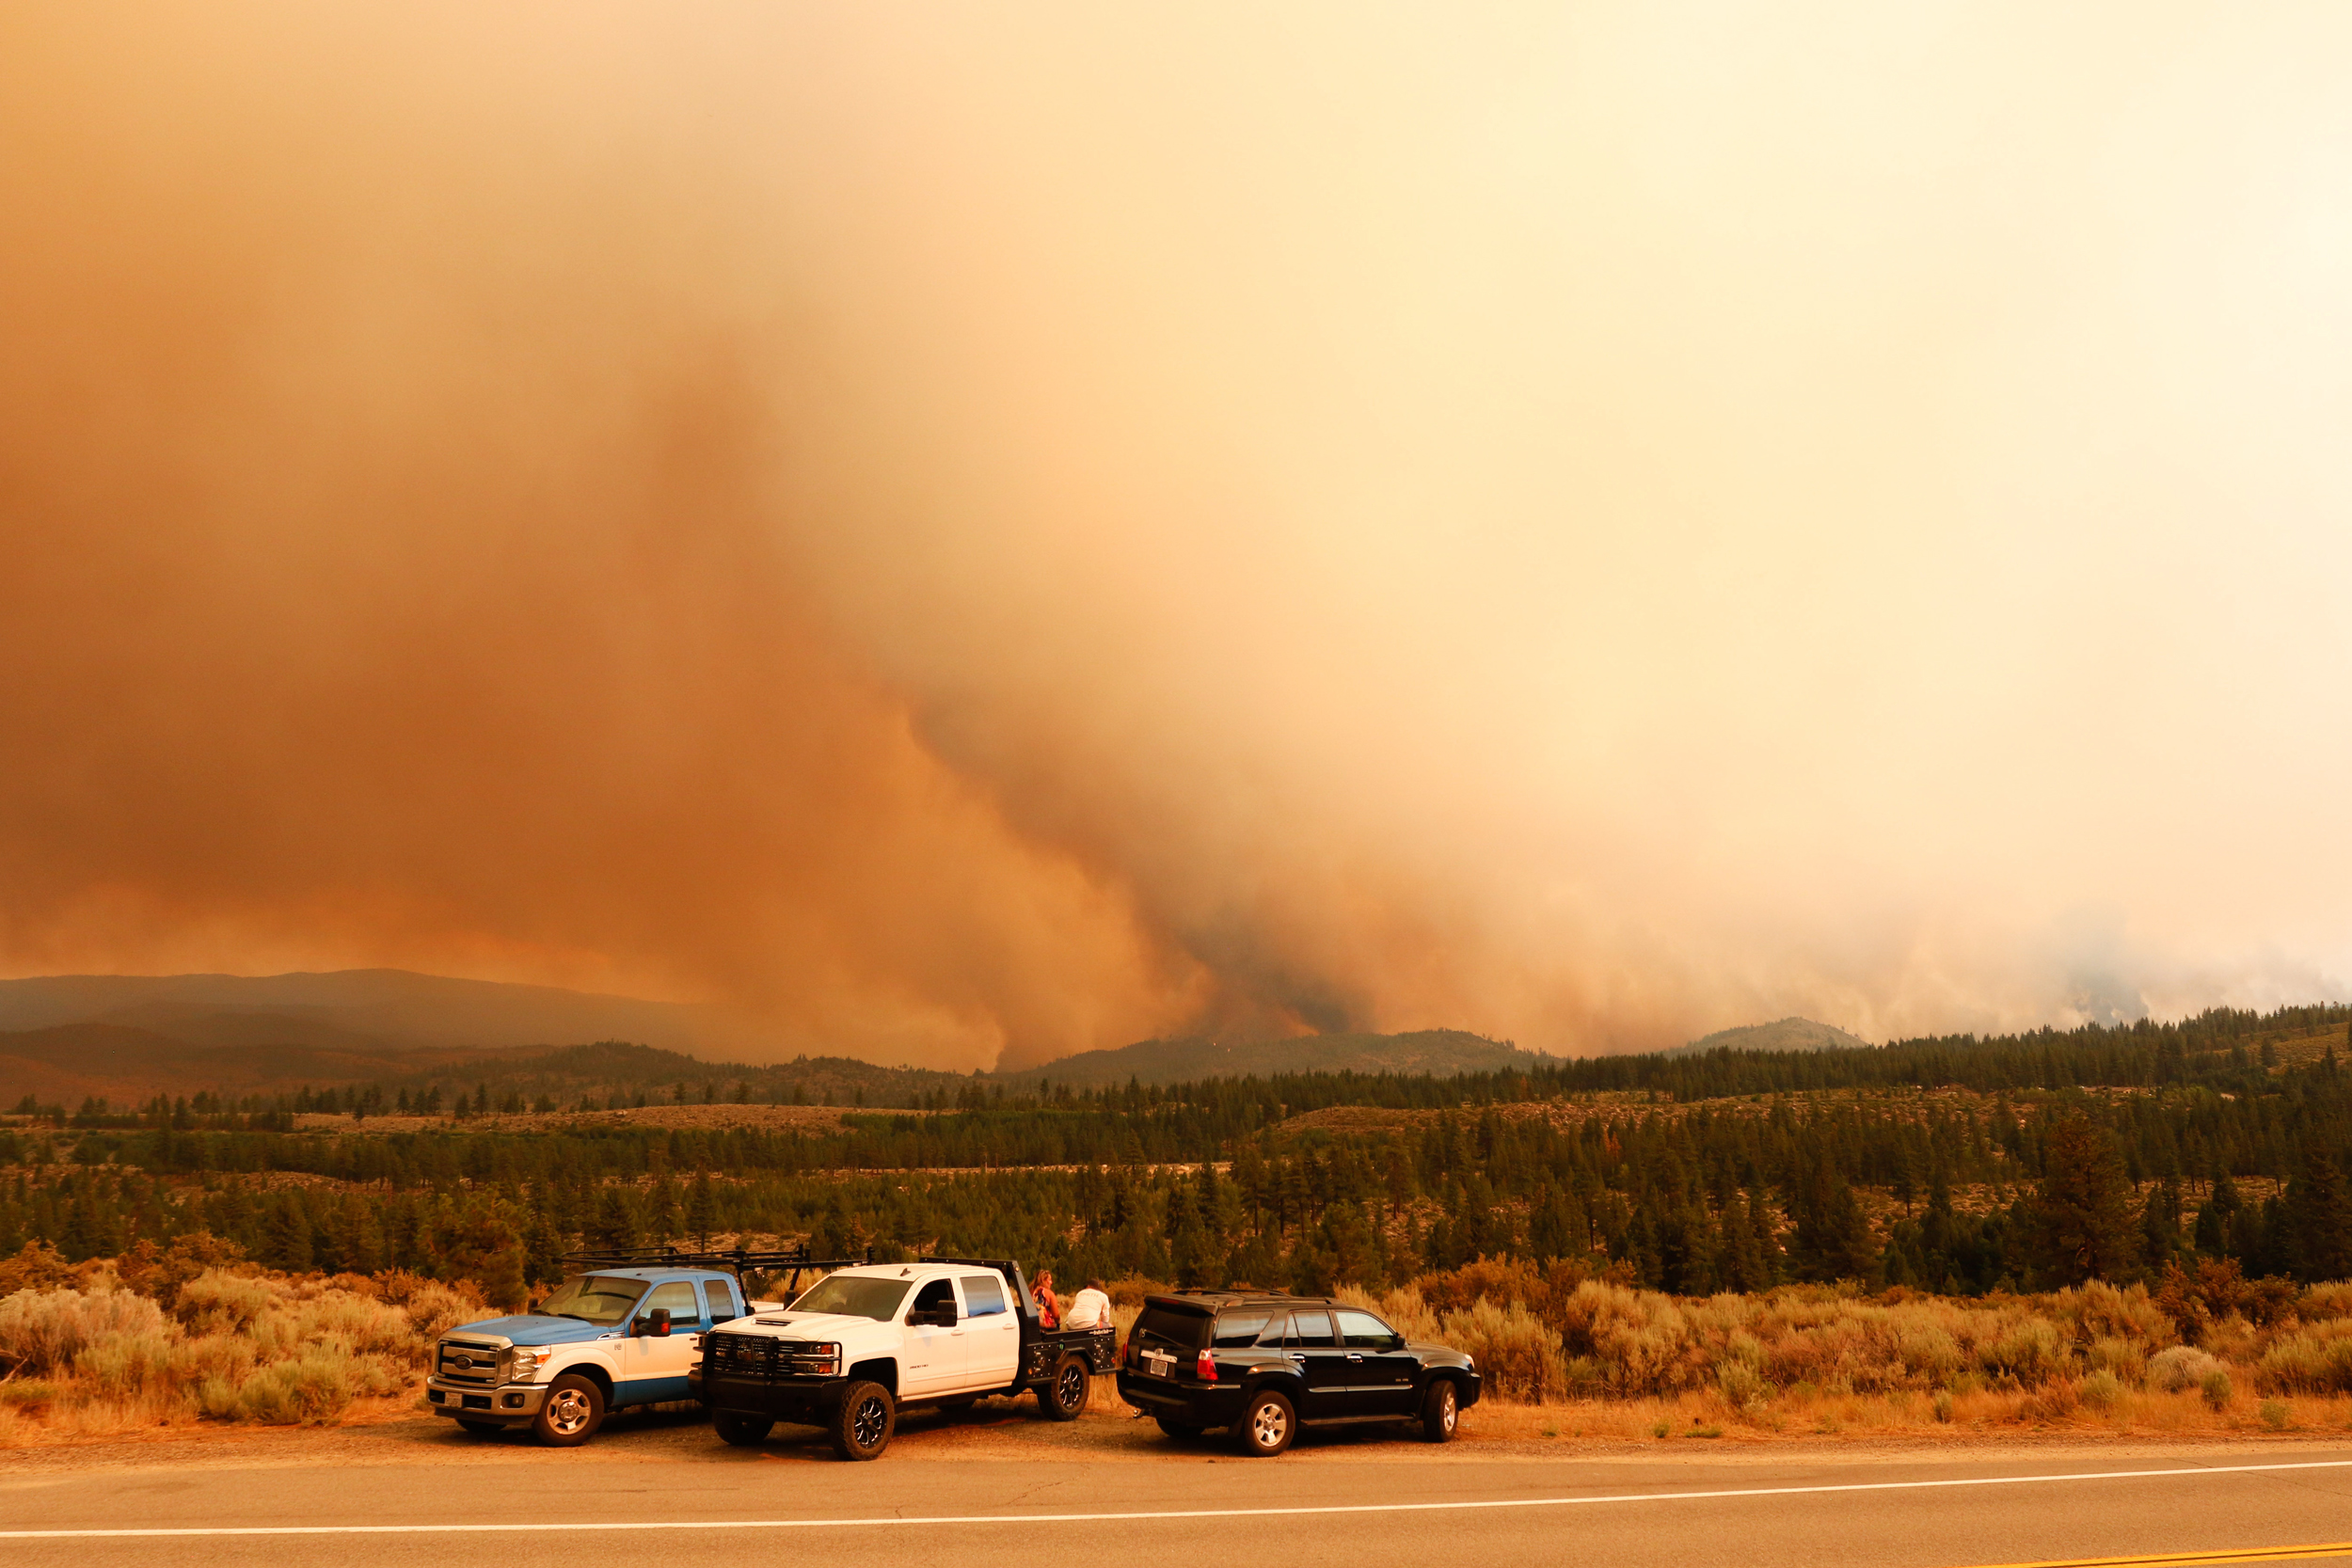 After wildfire smoke blanketed the West, Covid-19 cases and deaths rose